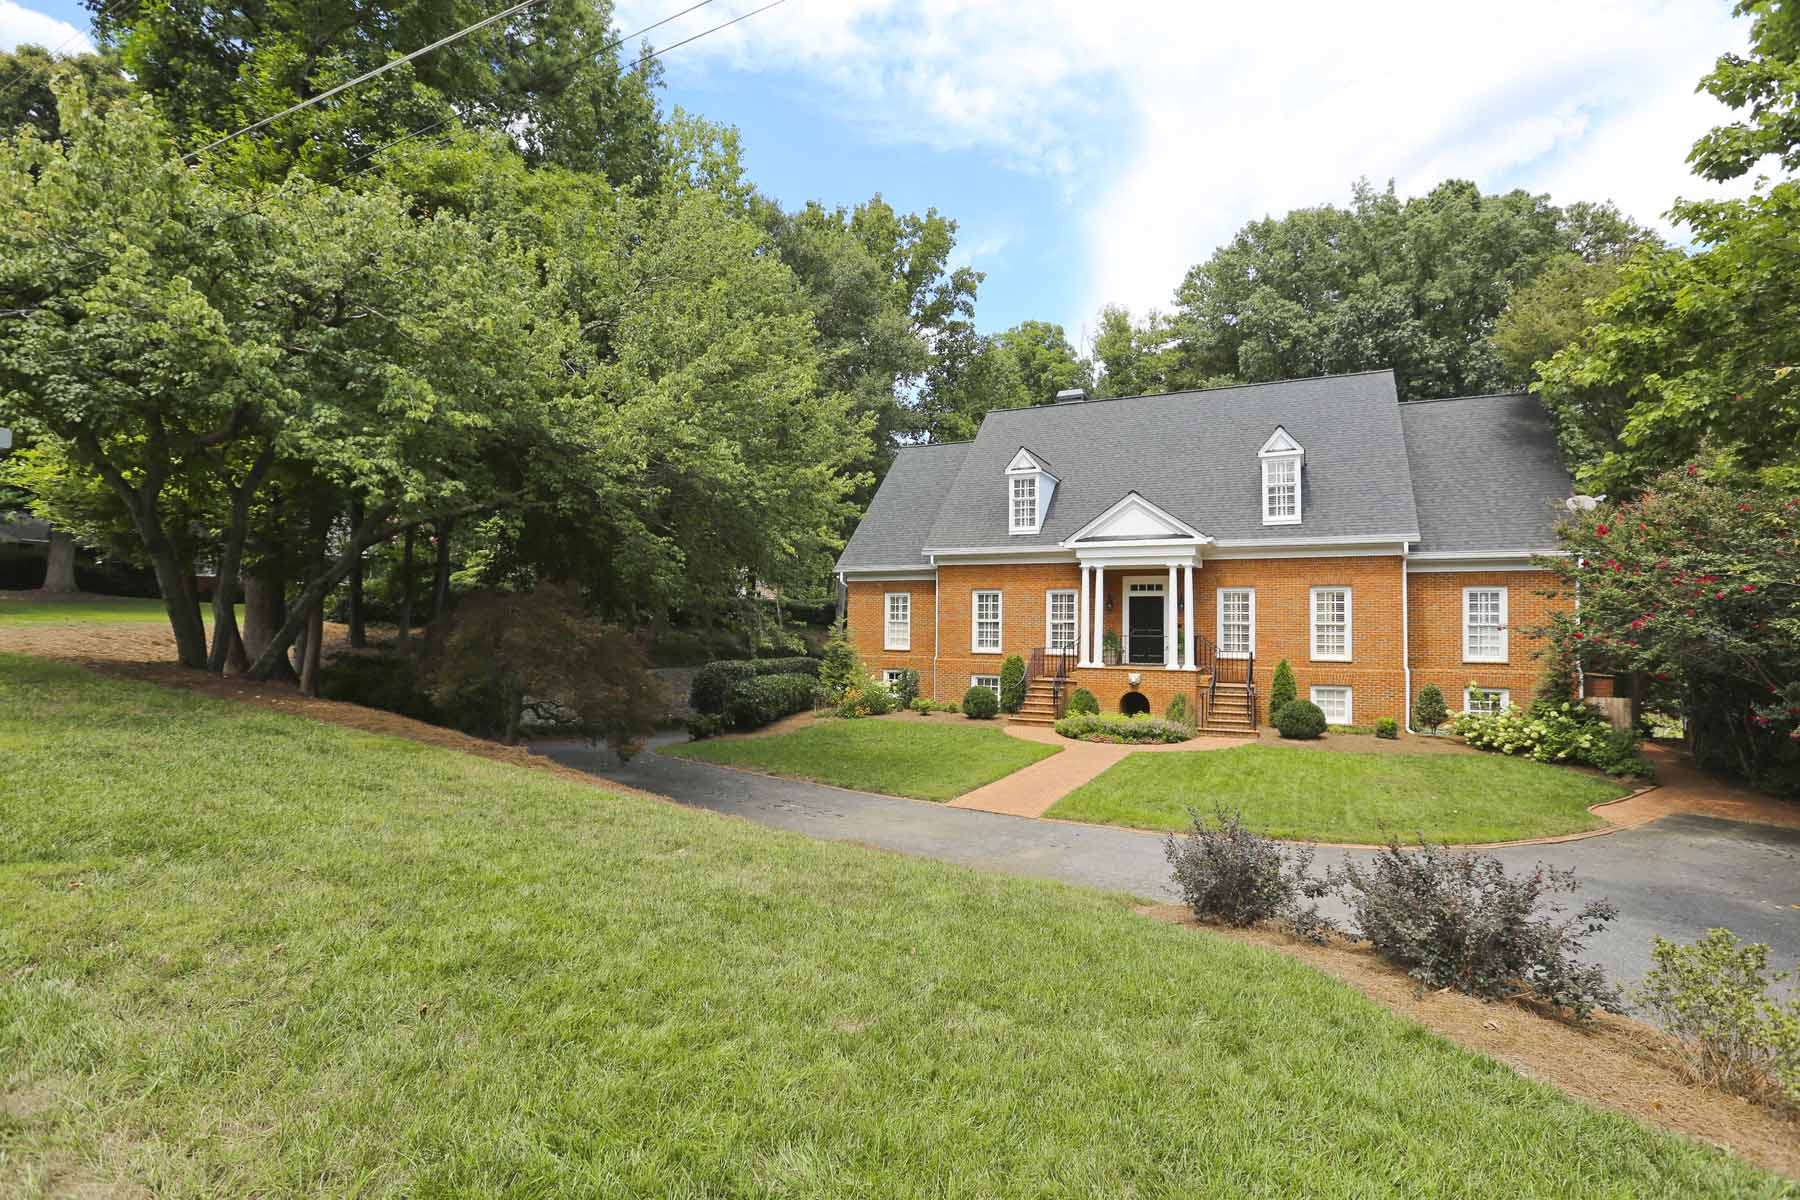 Maison unifamiliale pour l Vente à Exceptional Vinings Masterpiece 4345 Brookview Dr Atlanta, Georgia 30339 États-Unis